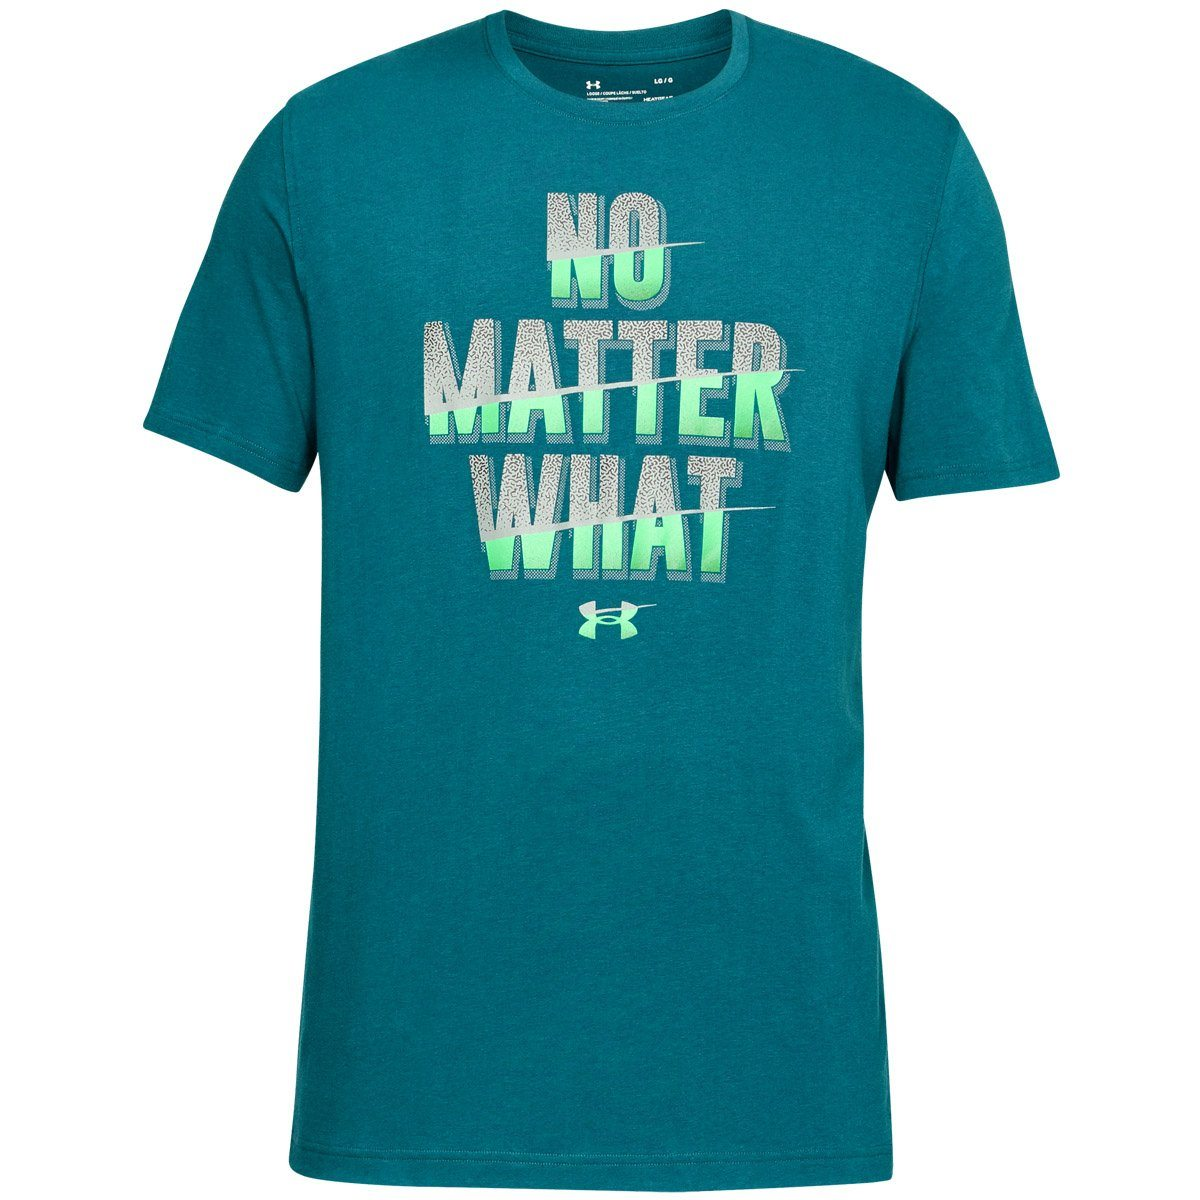 Under Armour No Matter What - Teal